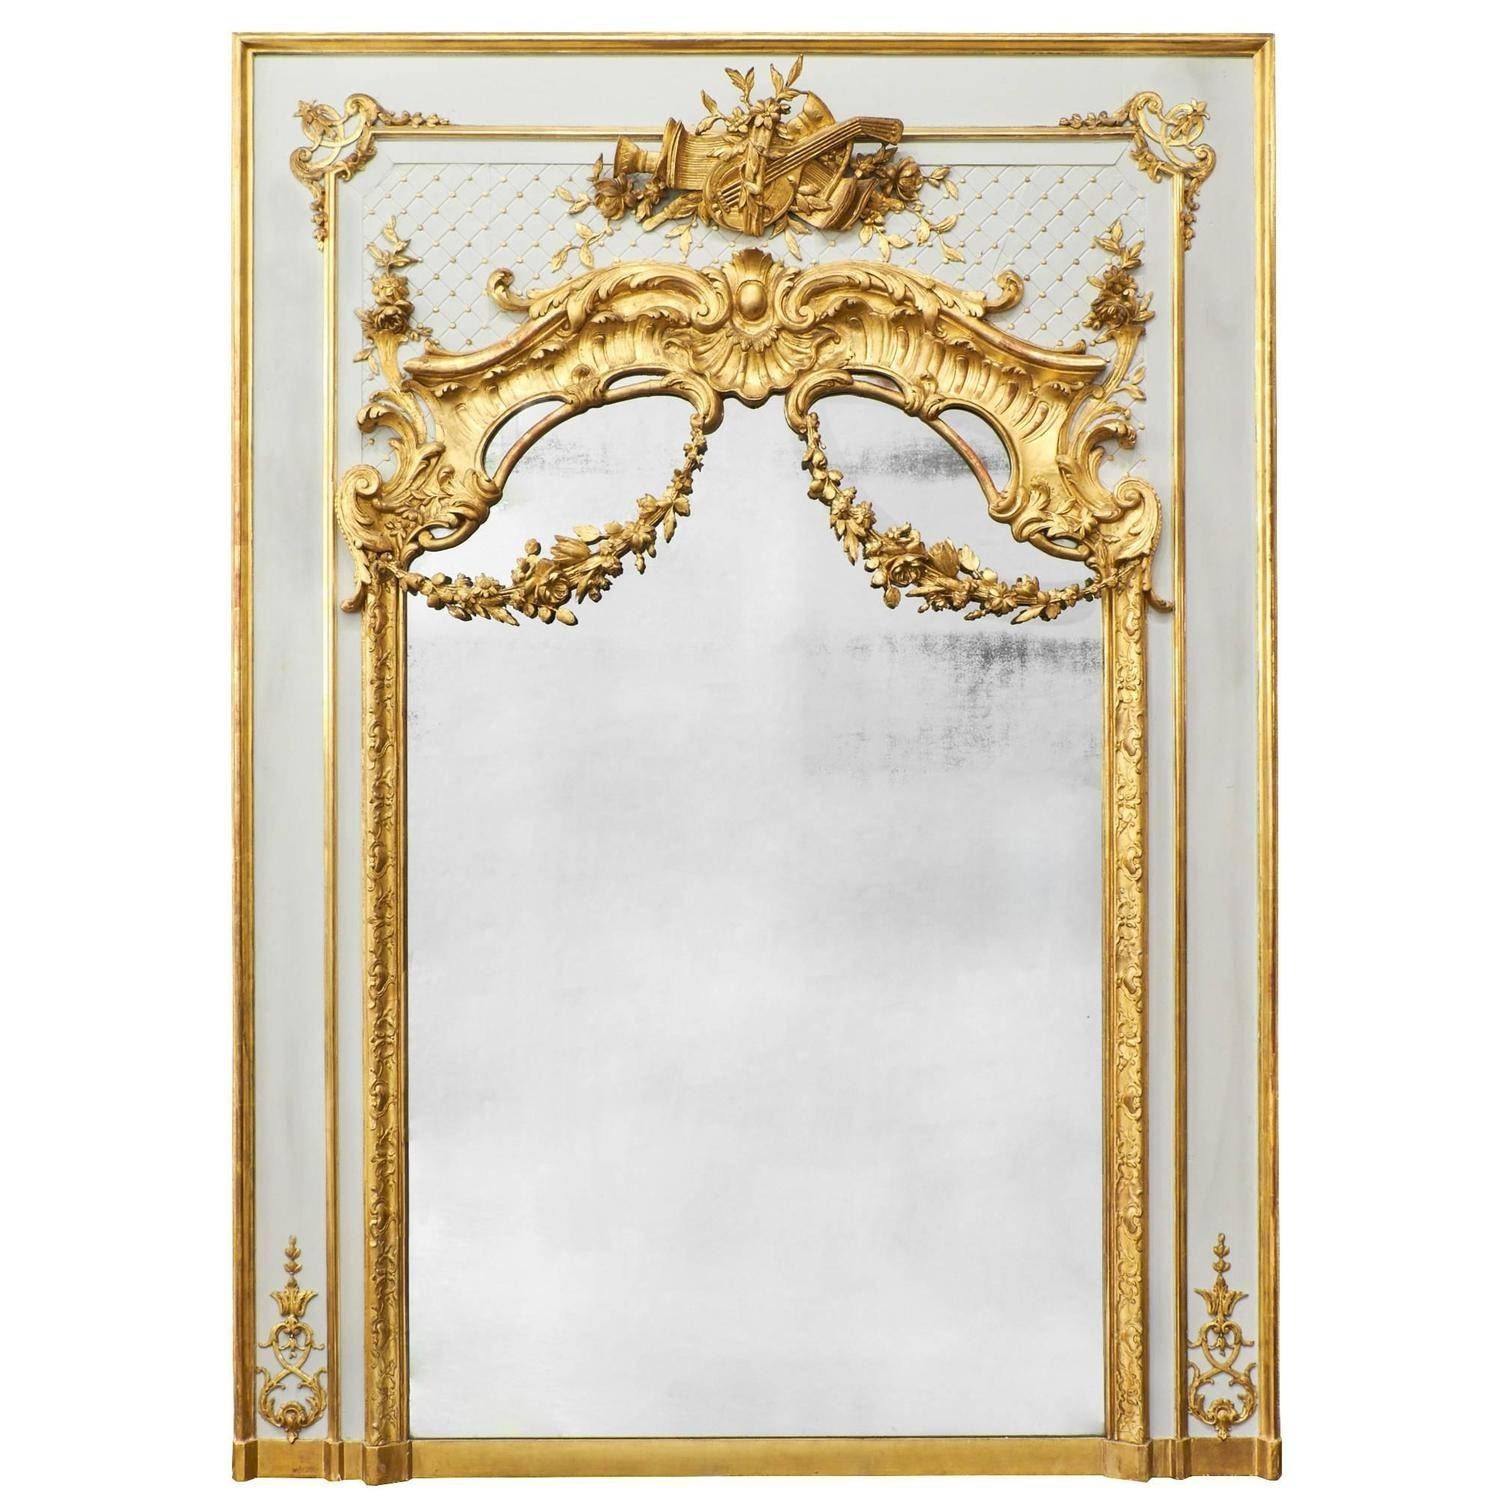 Gold Leaf Furniture - 2,044 For Sale At 1Stdibs regarding Antique Gold Mirrors French (Image 22 of 25)